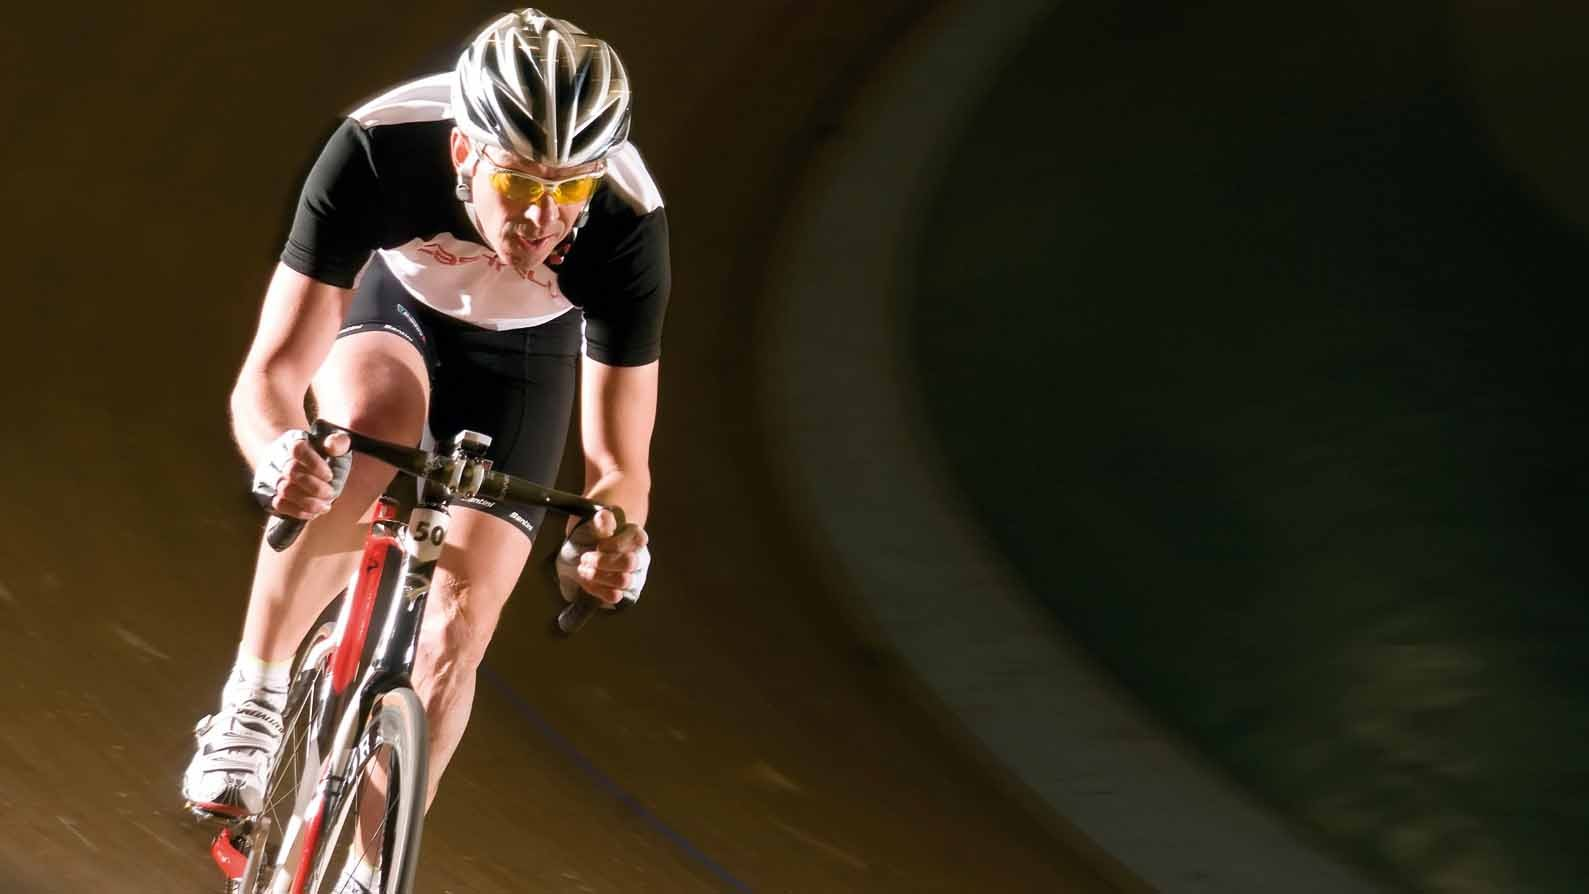 Focus on club rides while cycling in your fifties